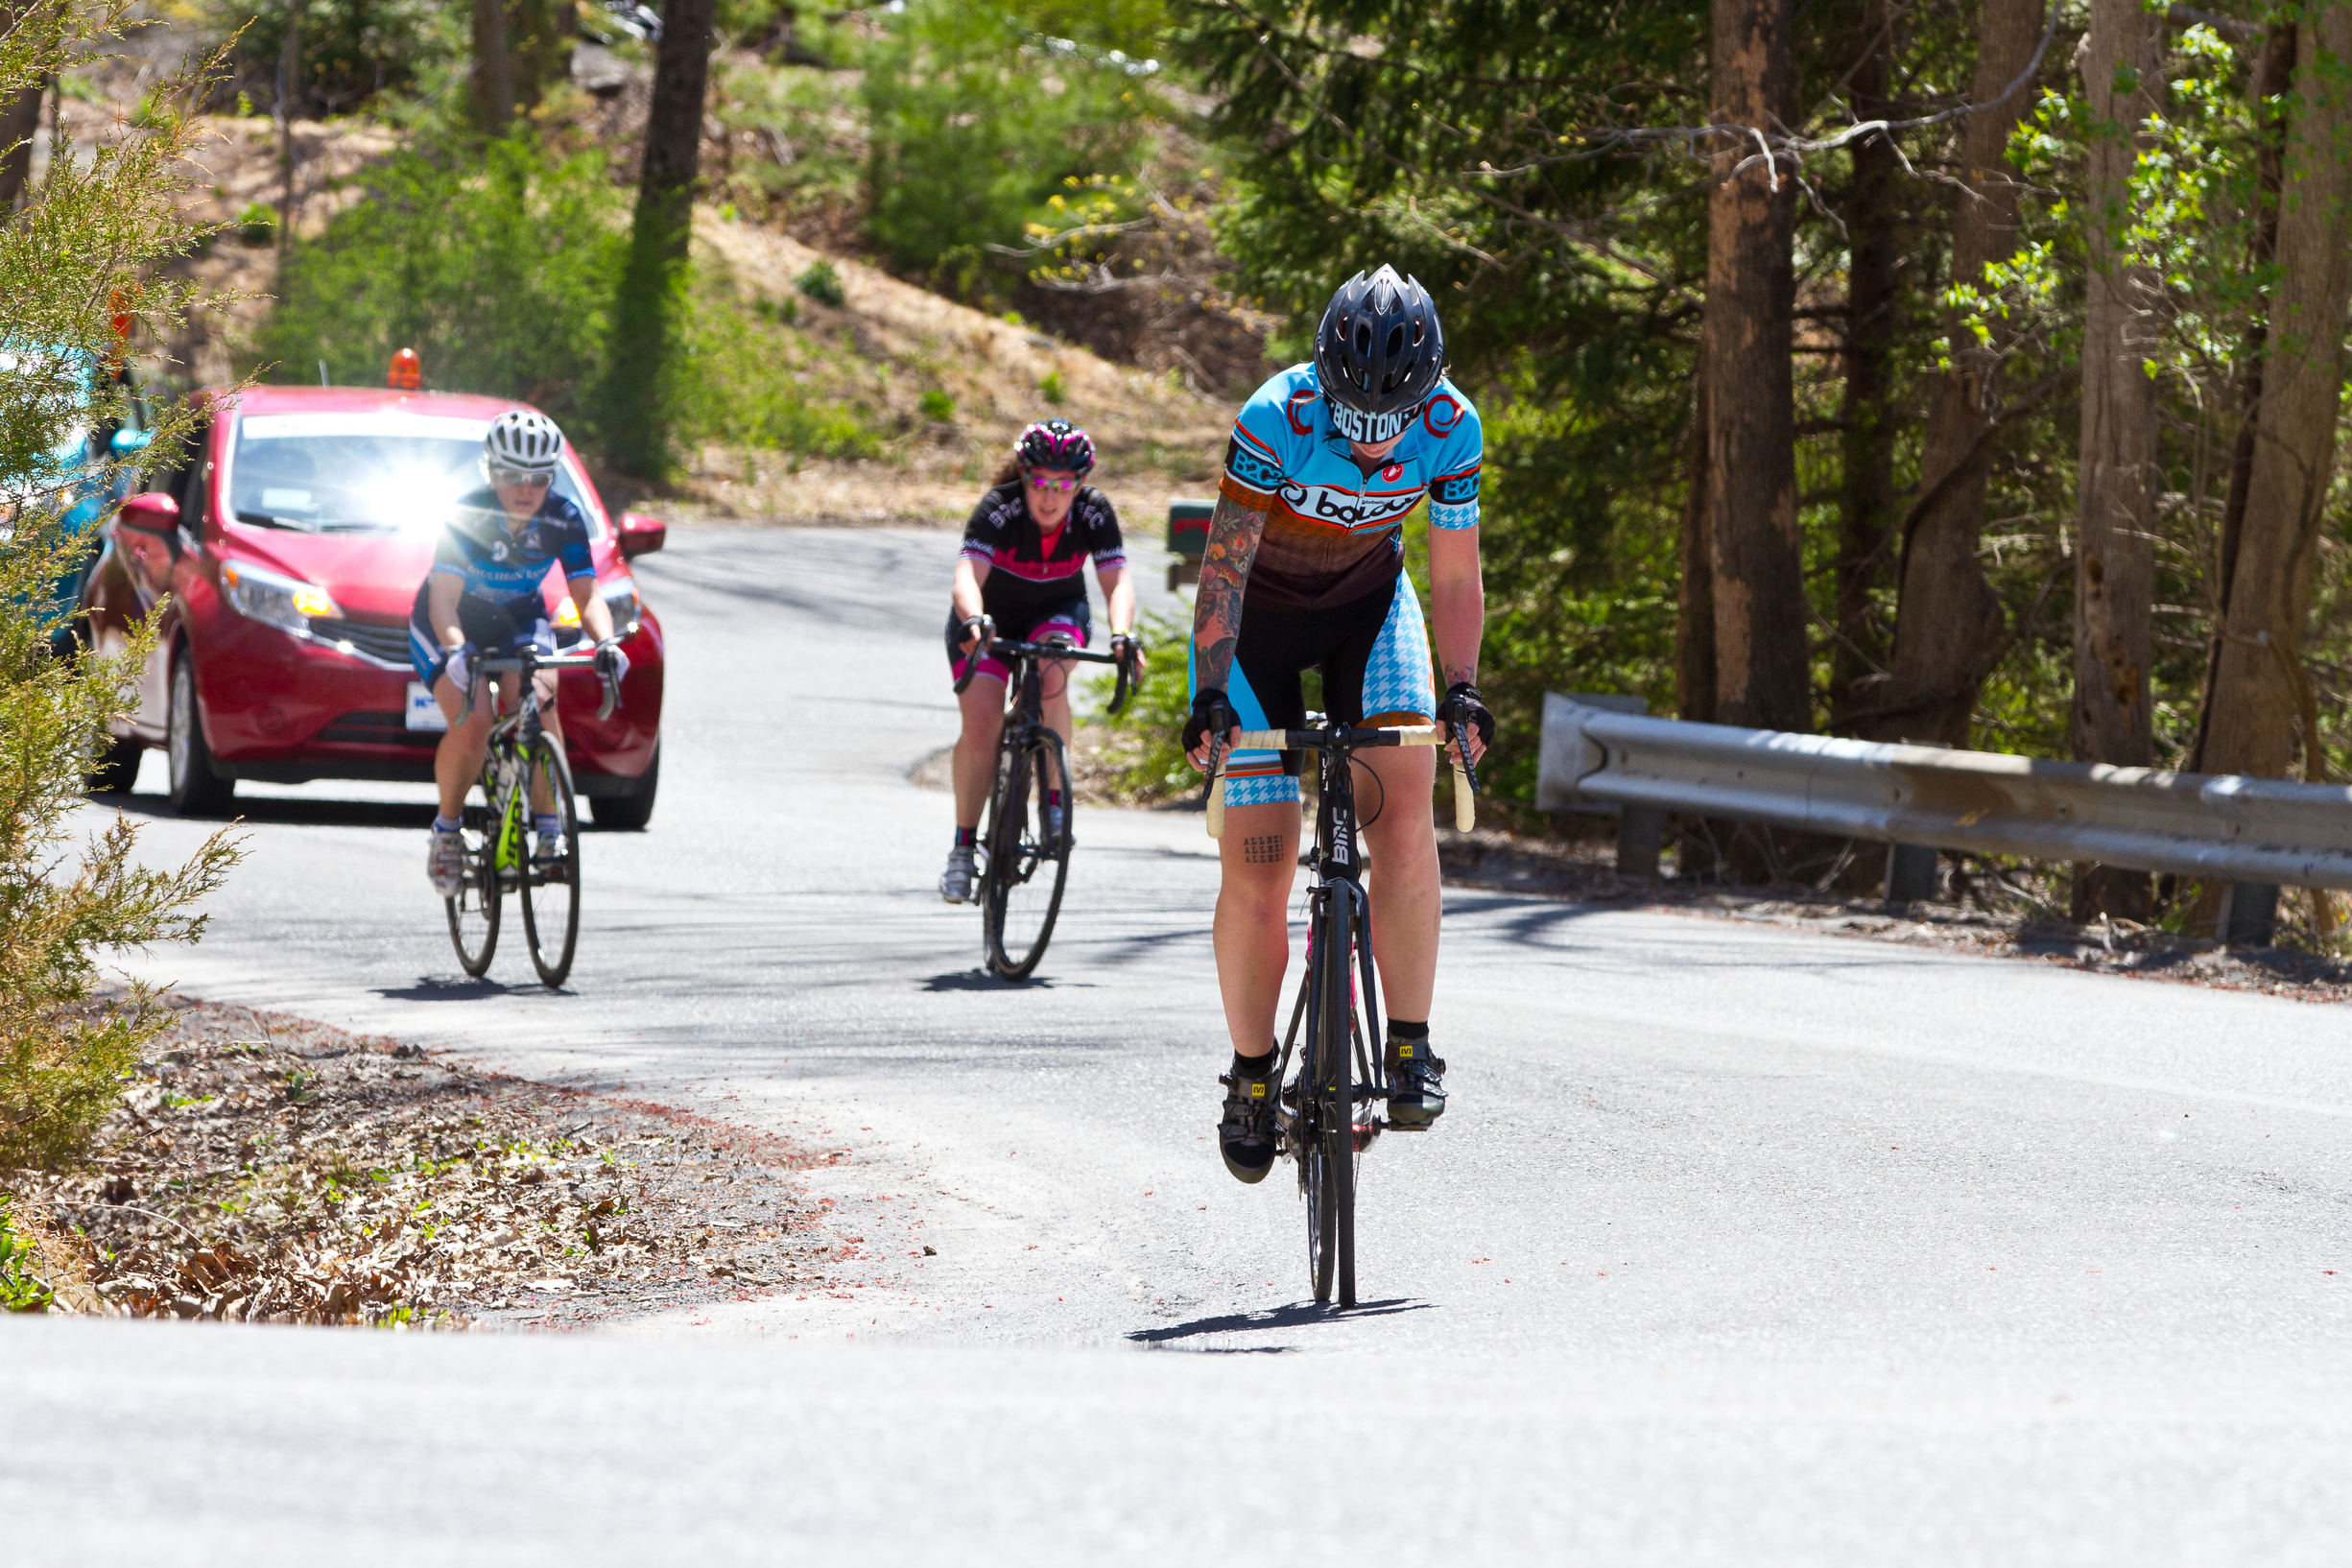 Alex turning the pedals over on the main climb, going on to best her previous year's time on the same course by nearly 15 minutes